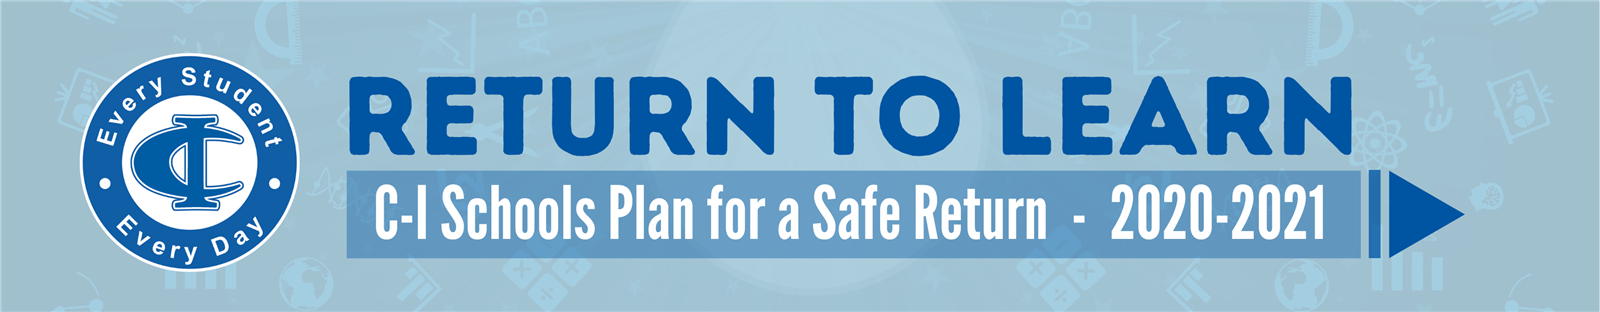 Return to Learn | Plan for a safe return